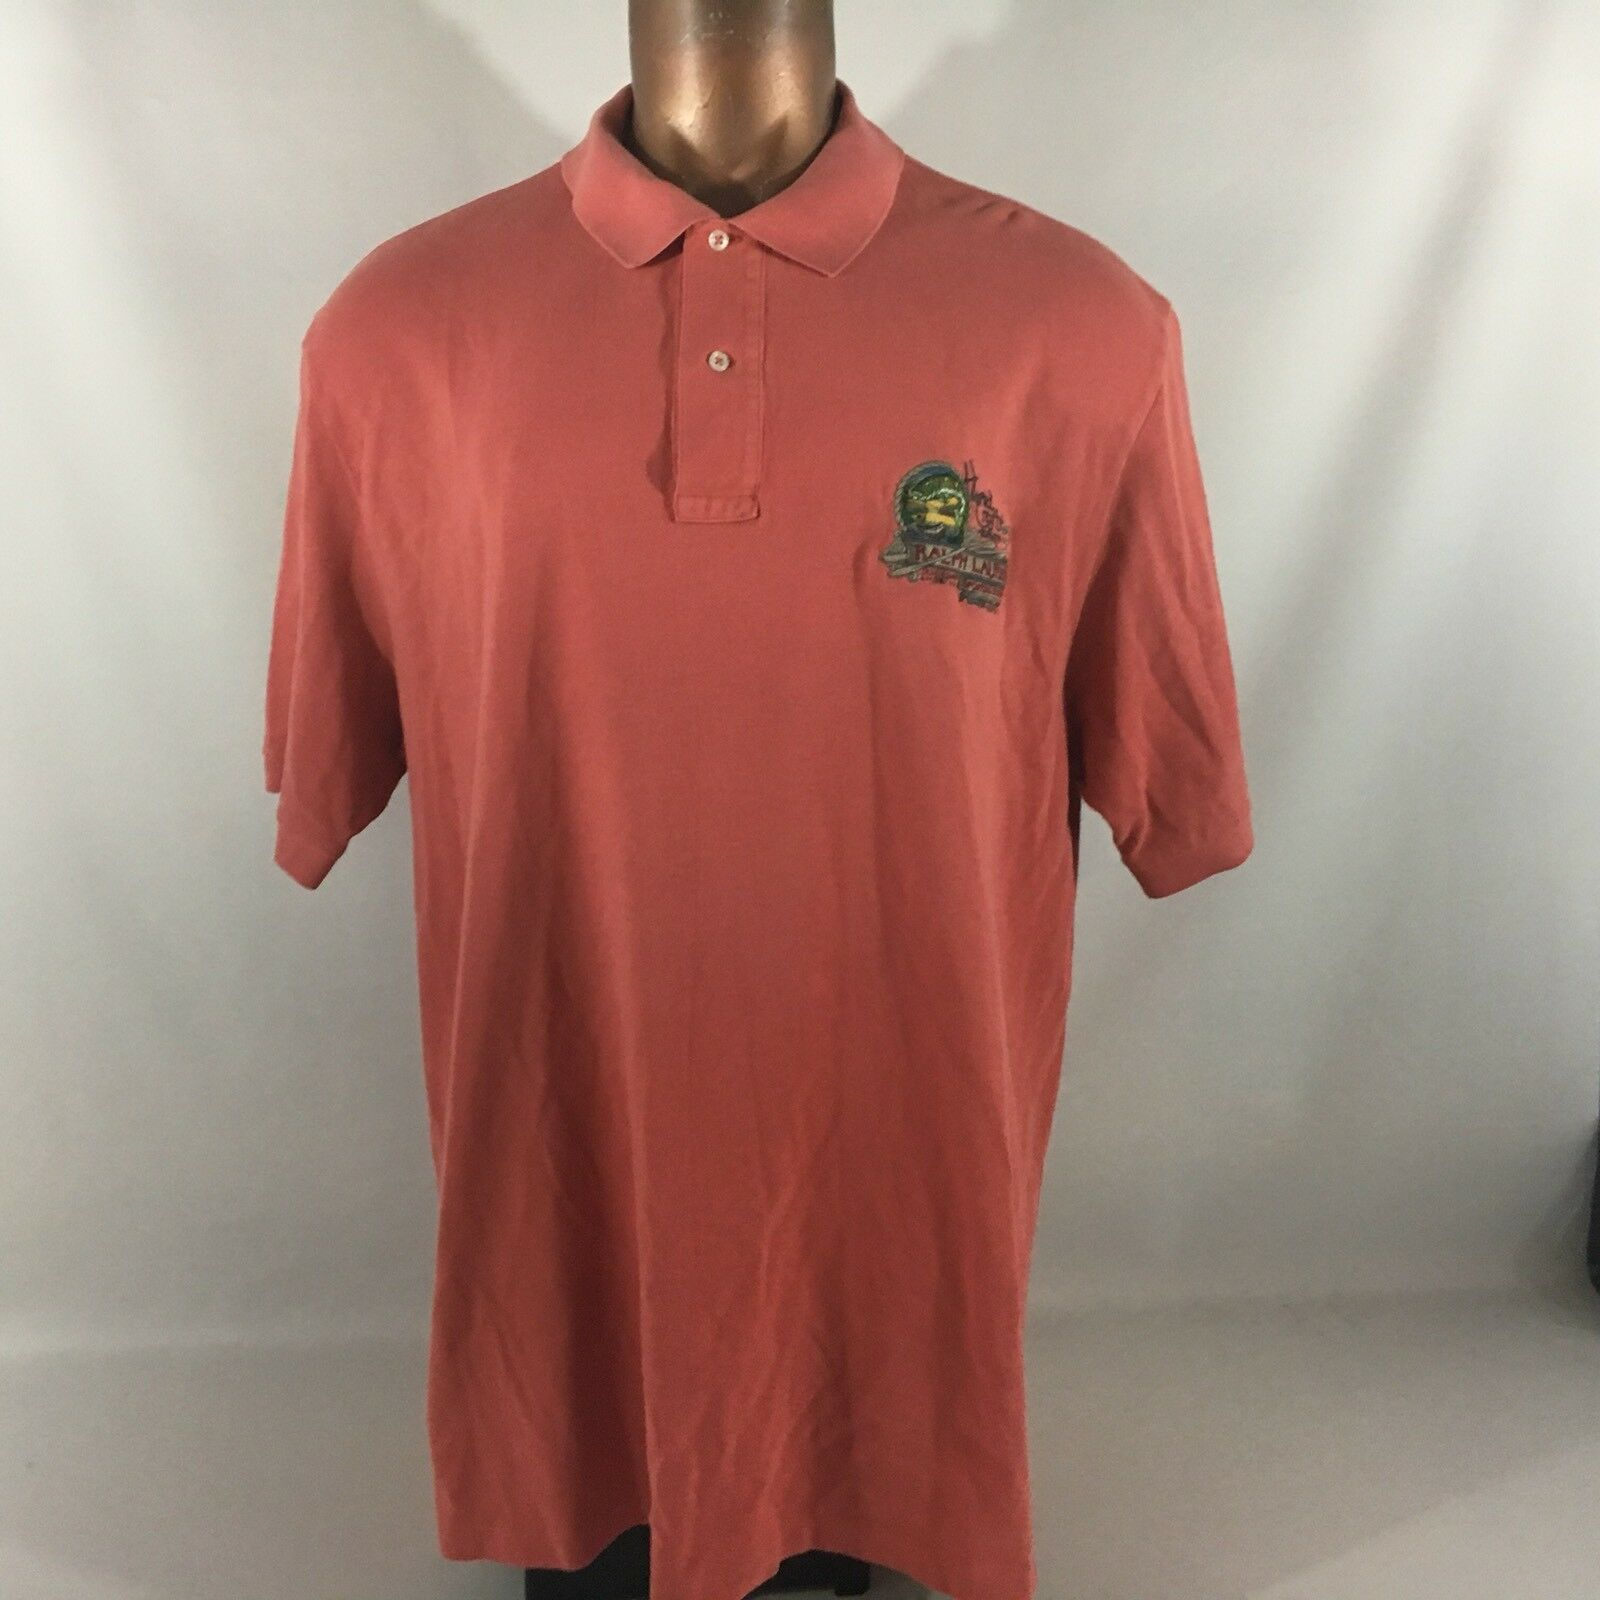 Polo Ralph Lauren Fly Fishing Embroiderouge Coral Cotton manche courte 2XLT Trout